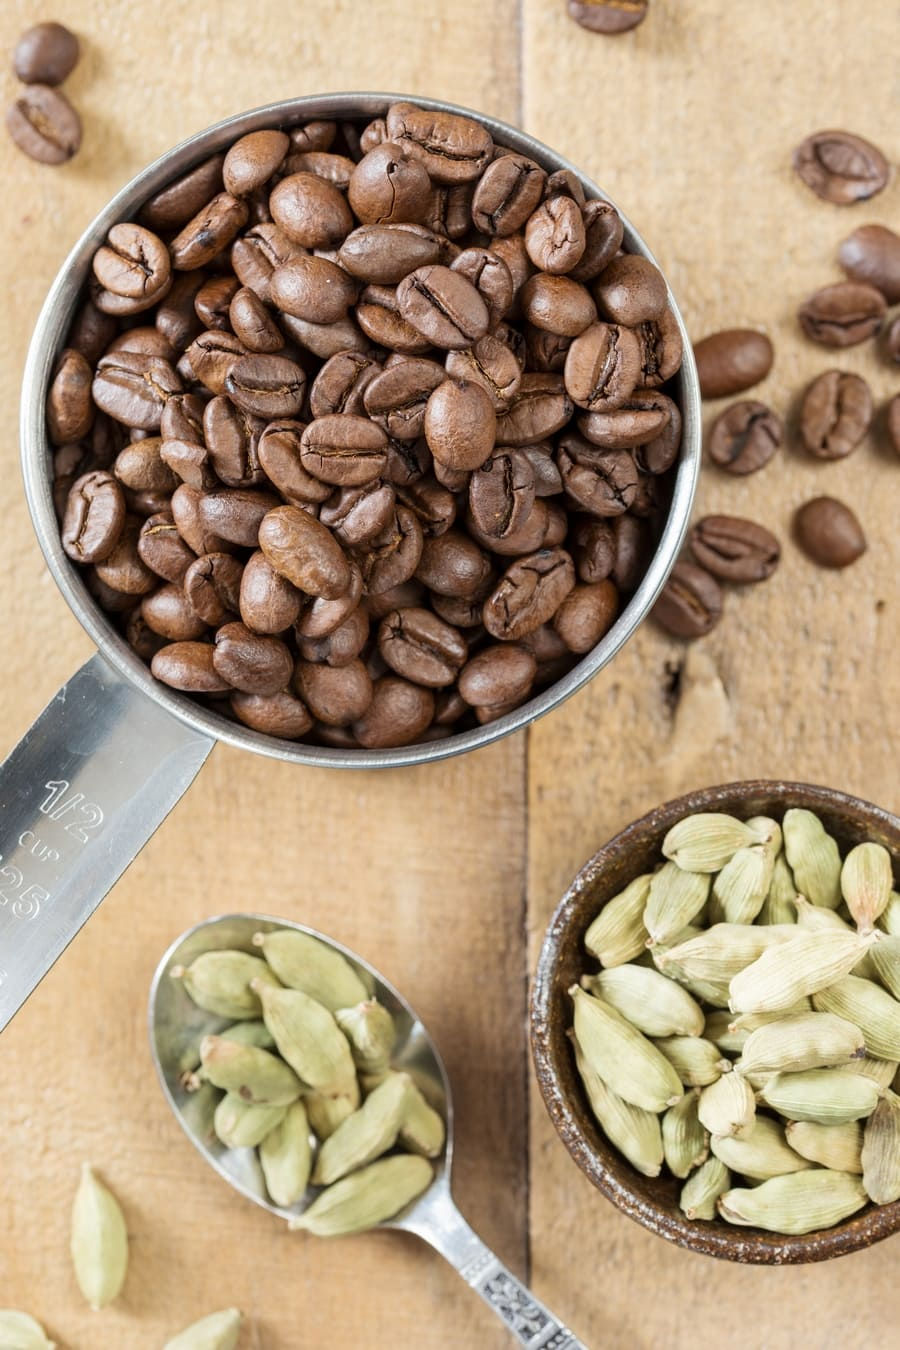 Overhead view of coffee beans and cardamom pods.